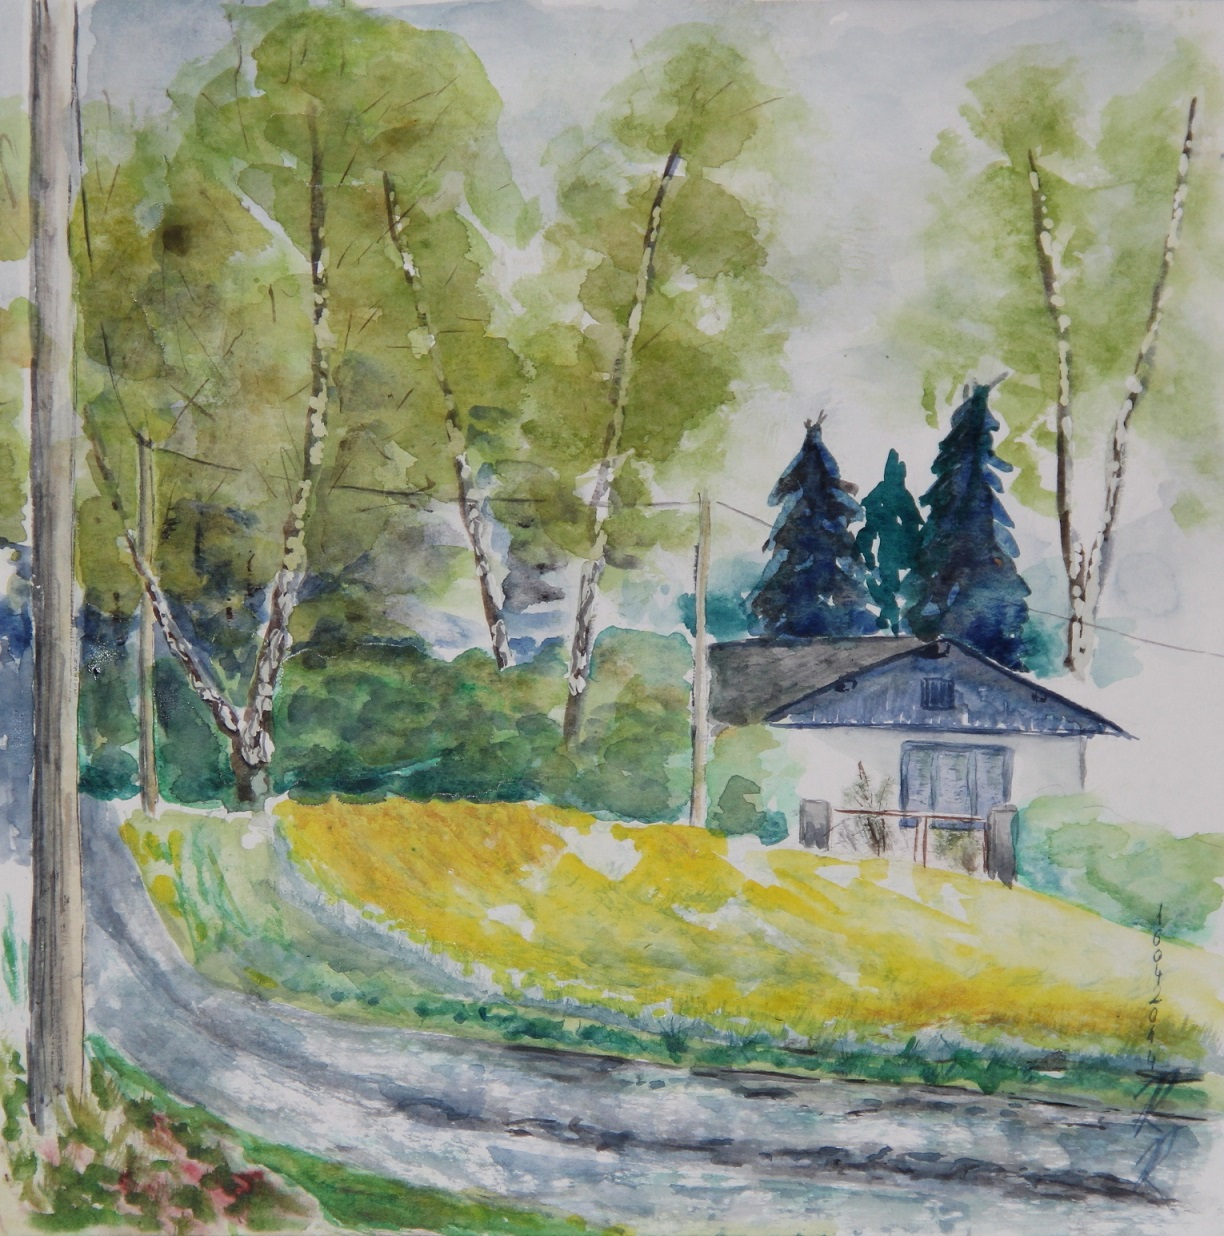 Info Zum Workshop Aquarell Malen Plein Air Reinhold Rippert Zeichnungen Bilder Skulpturen